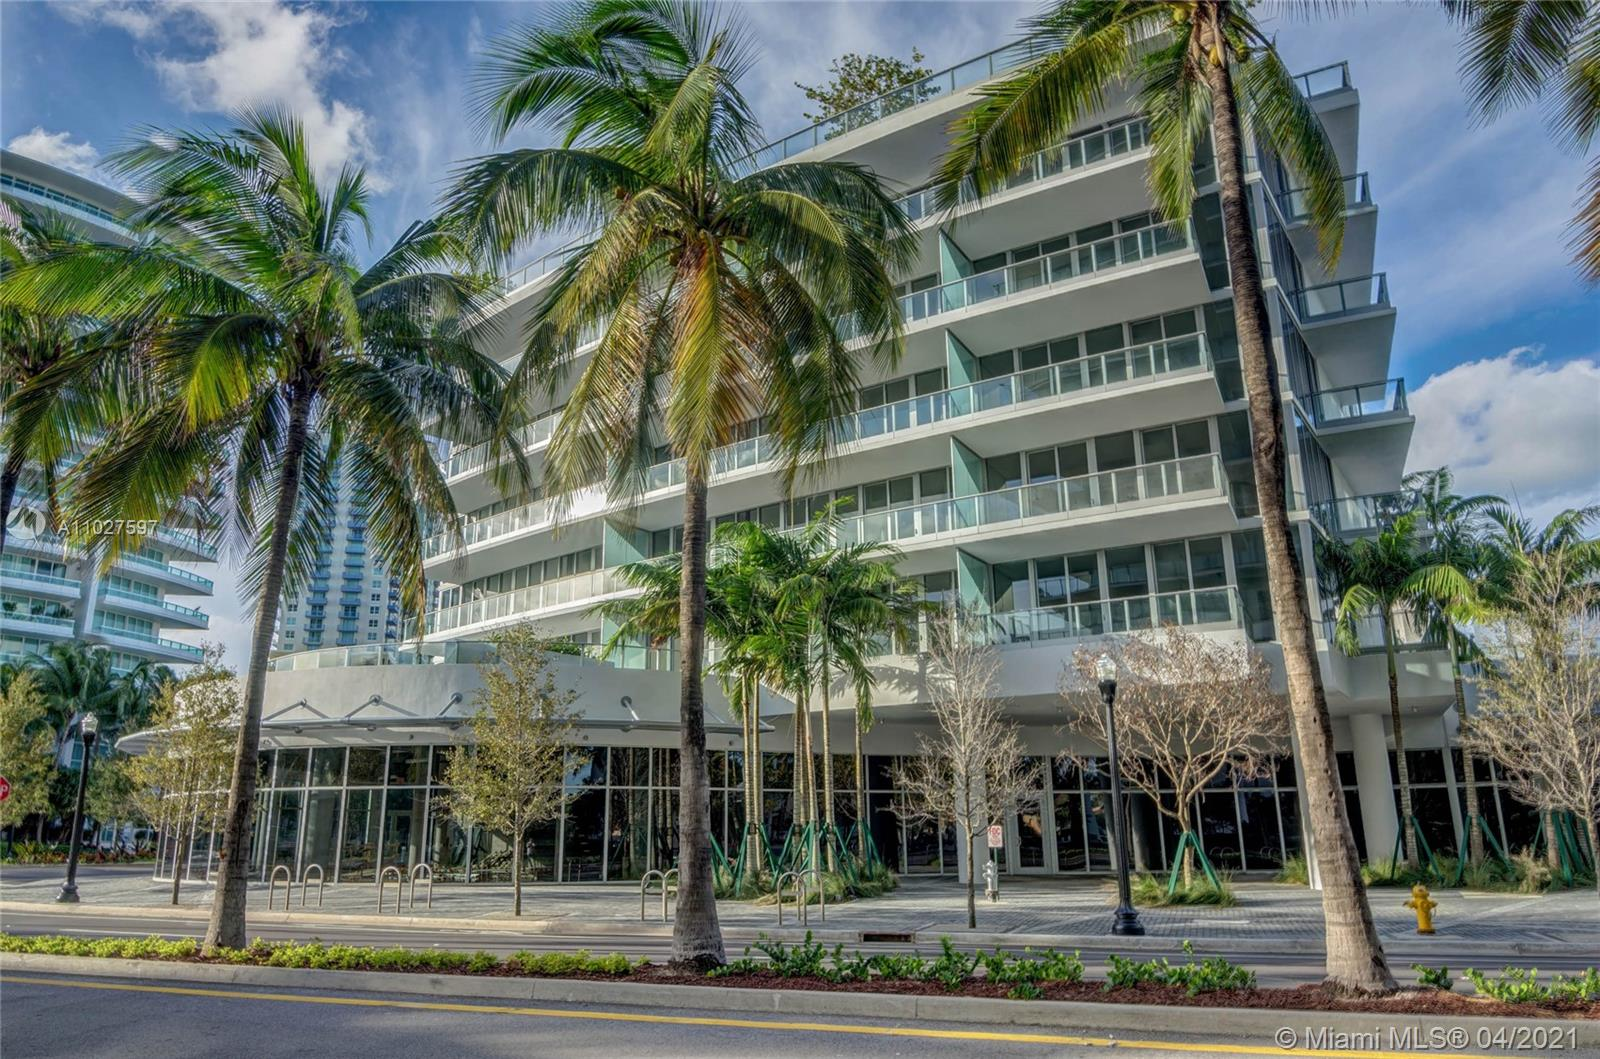 2 Bedroom 2.5 Bathroom + Den unit located at the most desirable West Tower at Marea, with beautiful sunset and marina/intercoastal views. Finishes include white marble 36 x 36 matt honed floors throughout the unit, tall 8 ft doors and window treatments with sheer and blackout. Kitchen is equipped with Wolf/Subzero Appliances. 10 ft ceilings and private elevators are just some of the features of this exclusive residence located in the heart of South Beach, within walking distance to some of the best restaurants in Miami, such as Joe's Stone Crab, Milos and Prime 112. Boutique building with only 30 residences, 24hr Security, Rooftop Pool, Exercise Room.